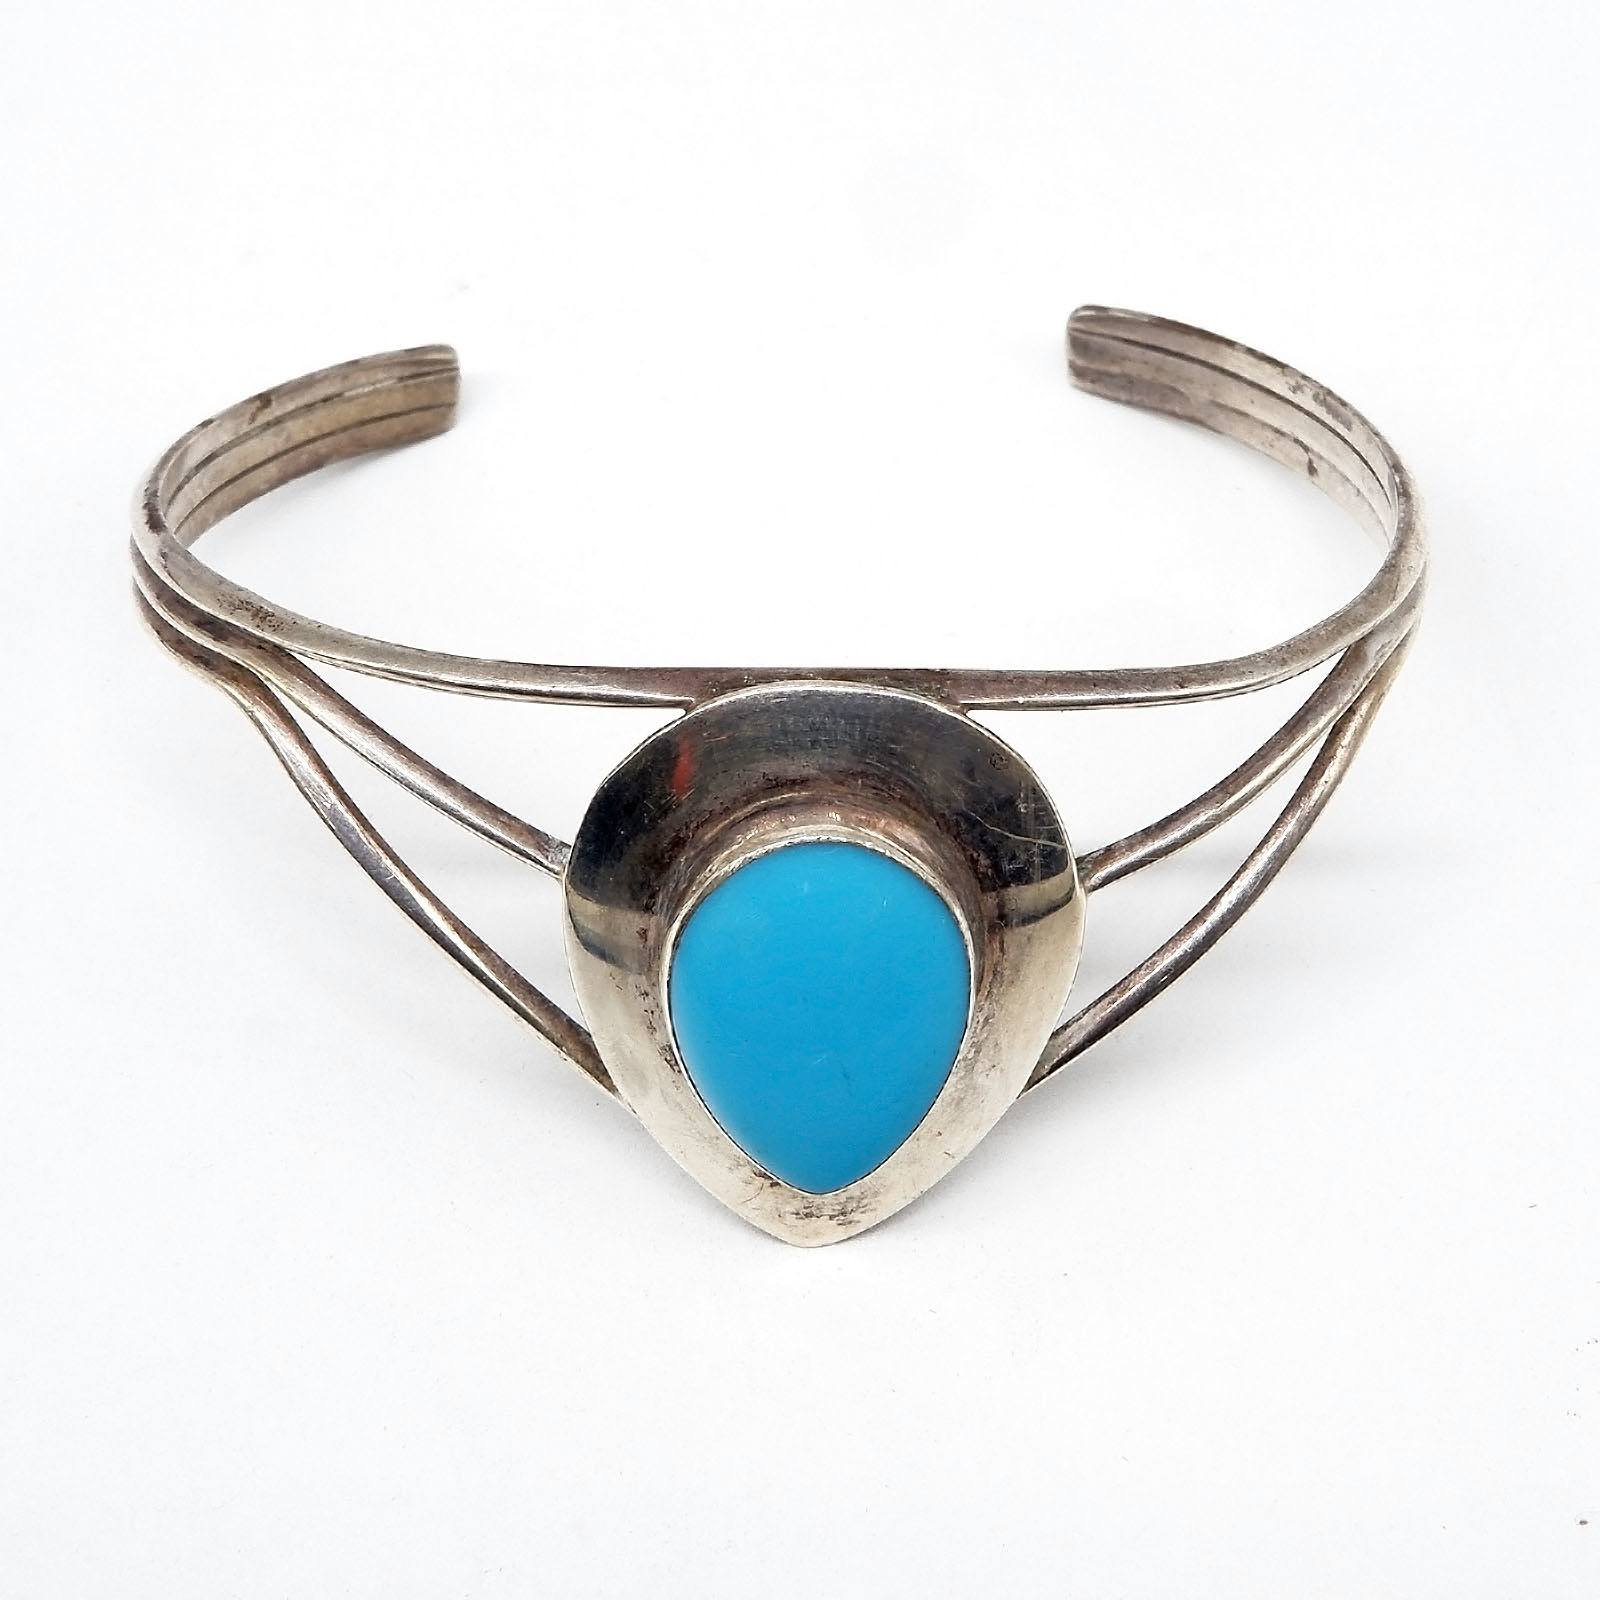 'Sterling Silver Cuff Bangle with Pear Shaped Turquoise '